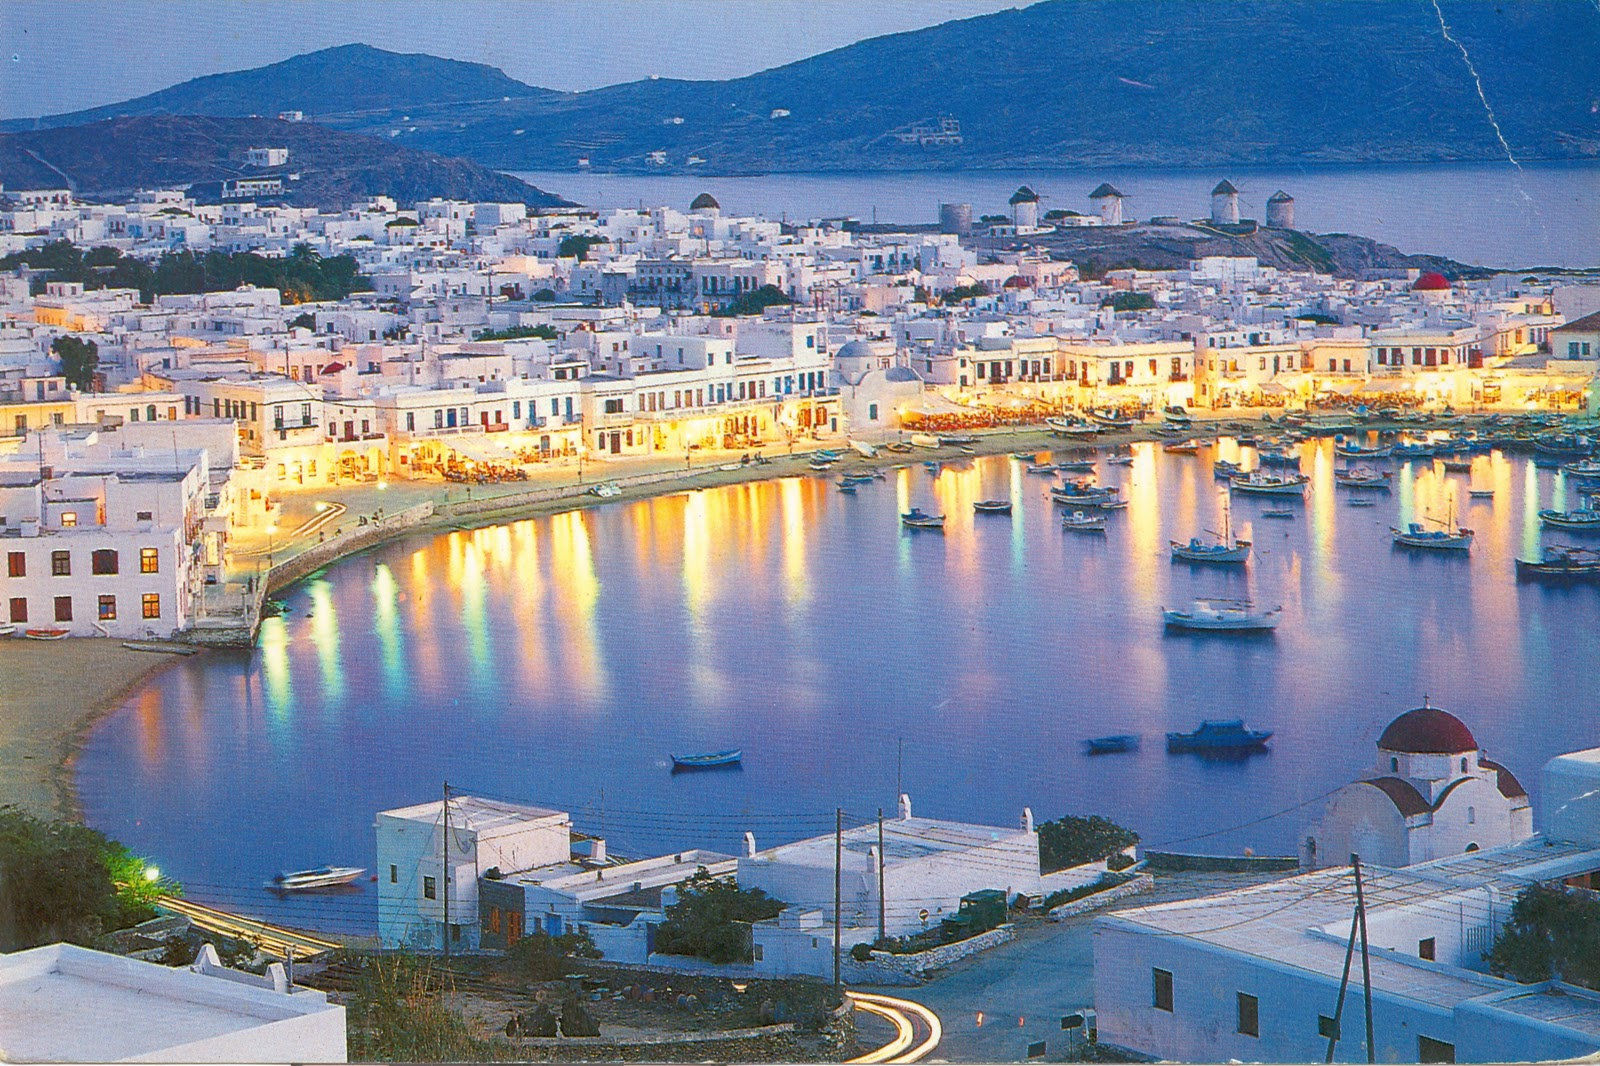 Best Island Beaches For Partying Mykonos St Barts: Daily Express: The 10 Best Greek Islands